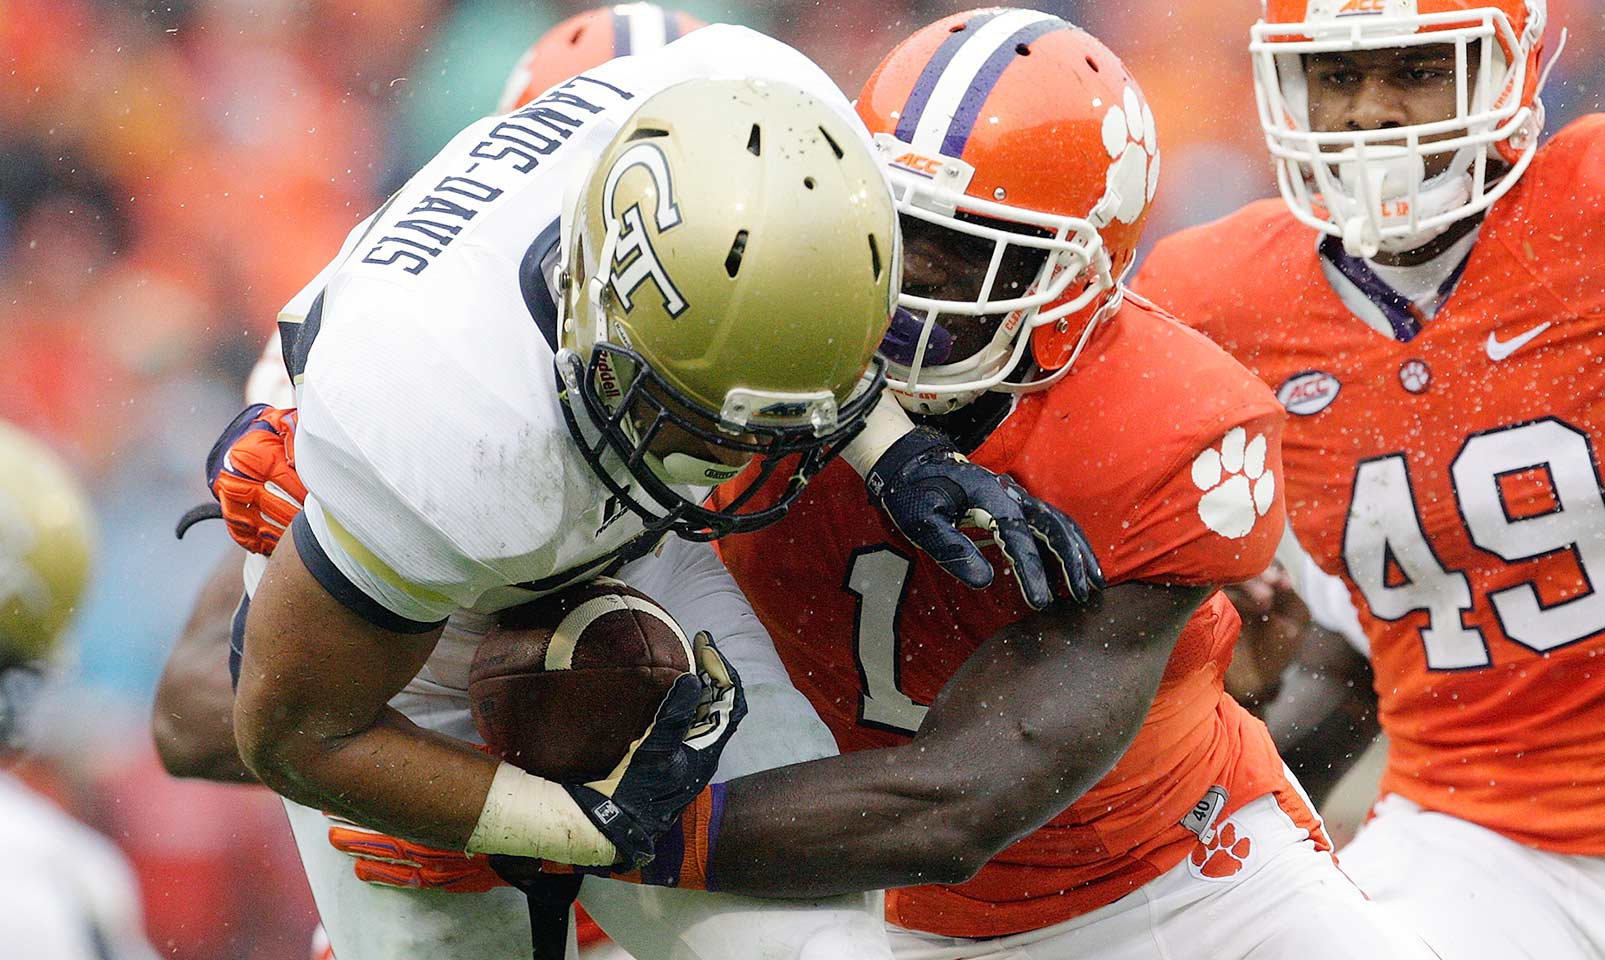 Clemson 43, Georgia Tech 24: After two straight tight wins, the Tigers routed the Yellow Jackets, building a 33–10 lead by halftime. All facets of the game clicked as Deshaun Watson and Wayne Gallman each contributed two scores while Clemson's defense held Georgia Tech to 1.7 yards per carry.